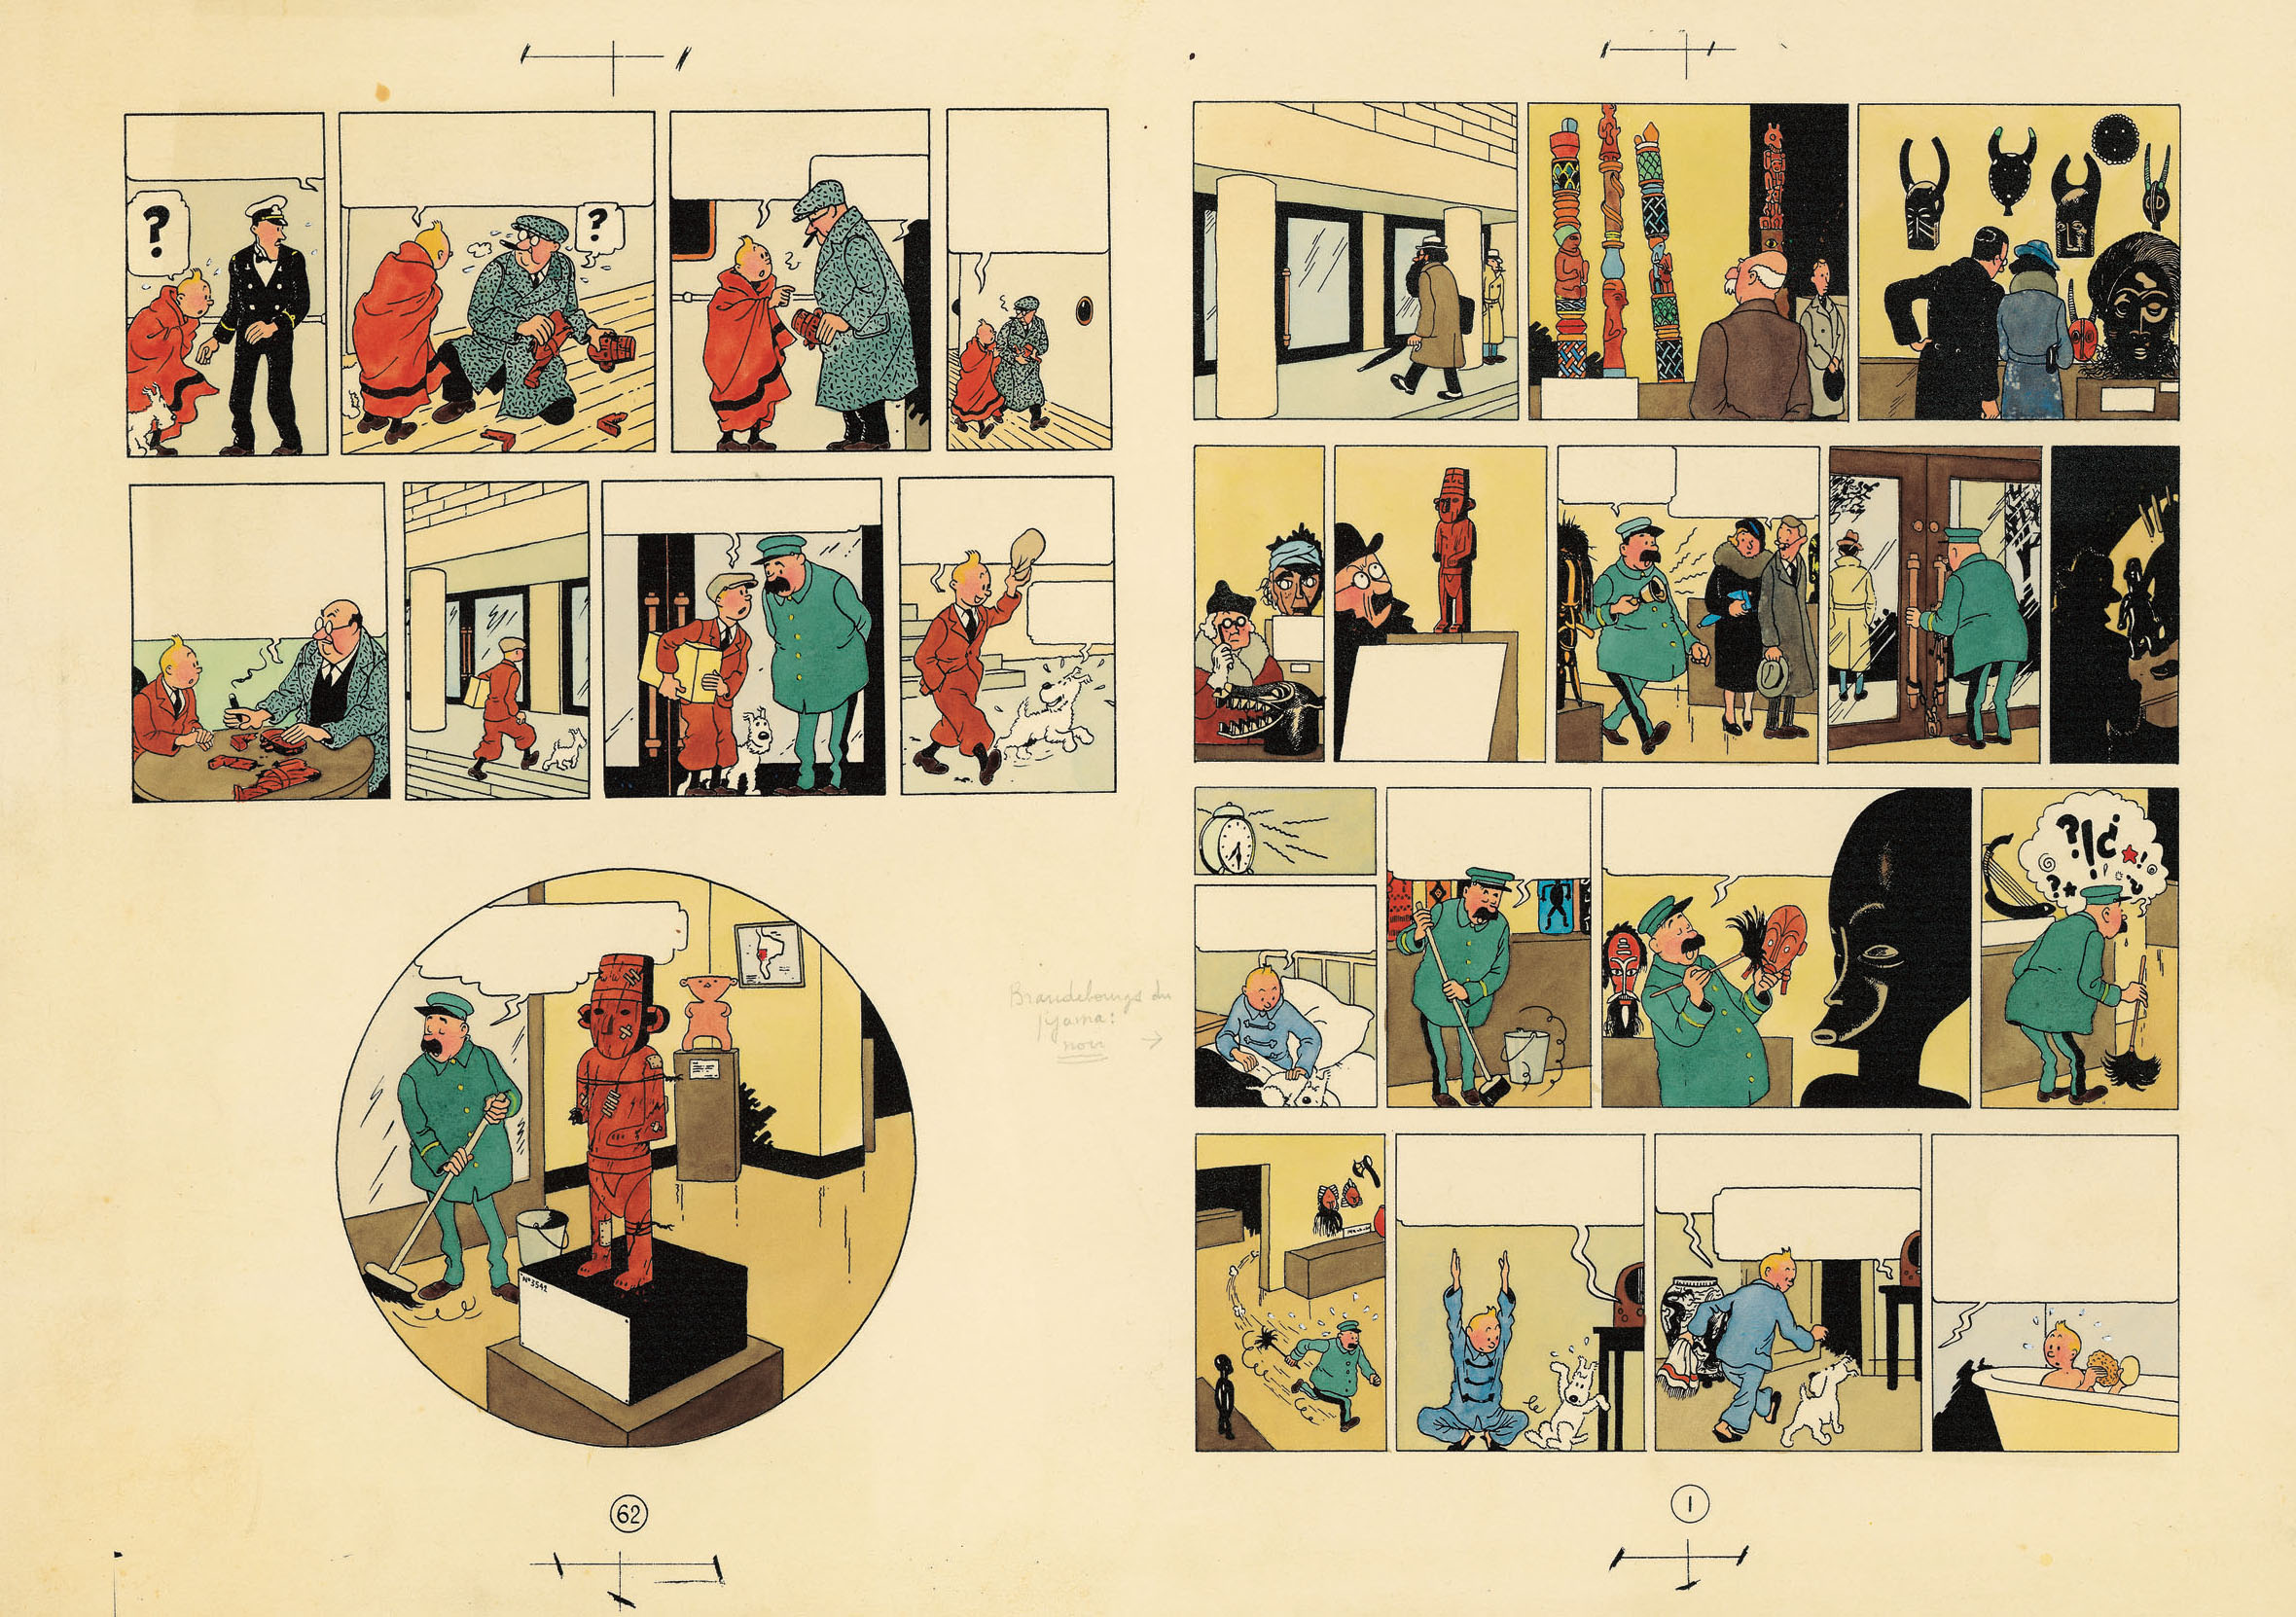 lue colouring for sheets 1 and 62 of Les Aventures de Tintin – L'Oreille cassée, 1956 (watercolour and gouache applied on printed proof).